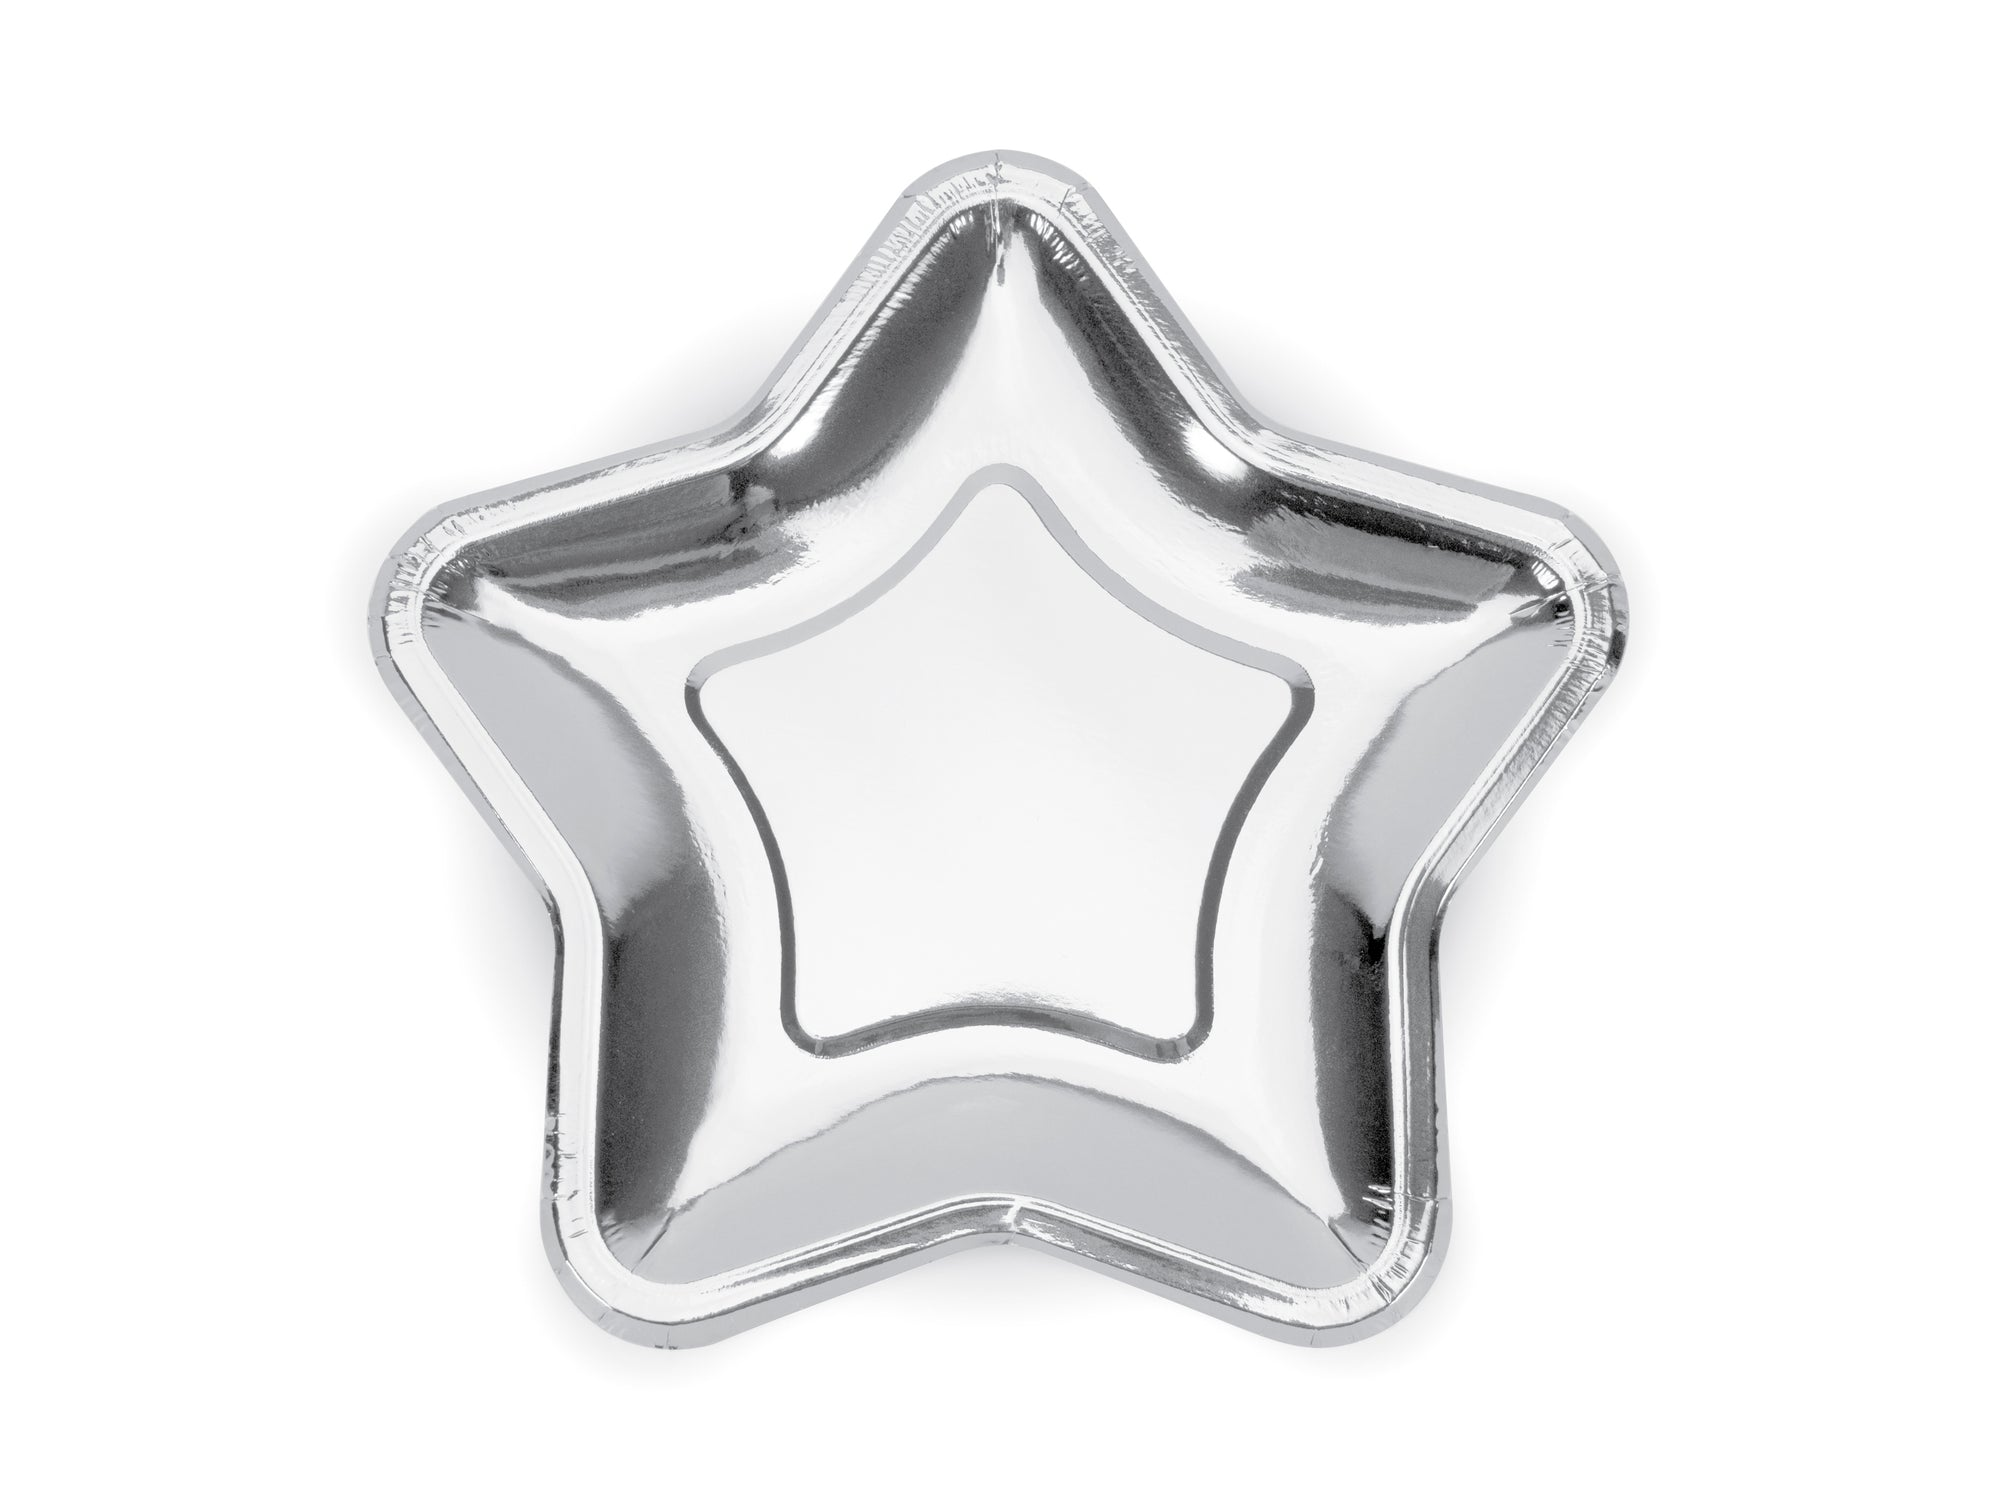 Mini Silver Star Shaped Plates